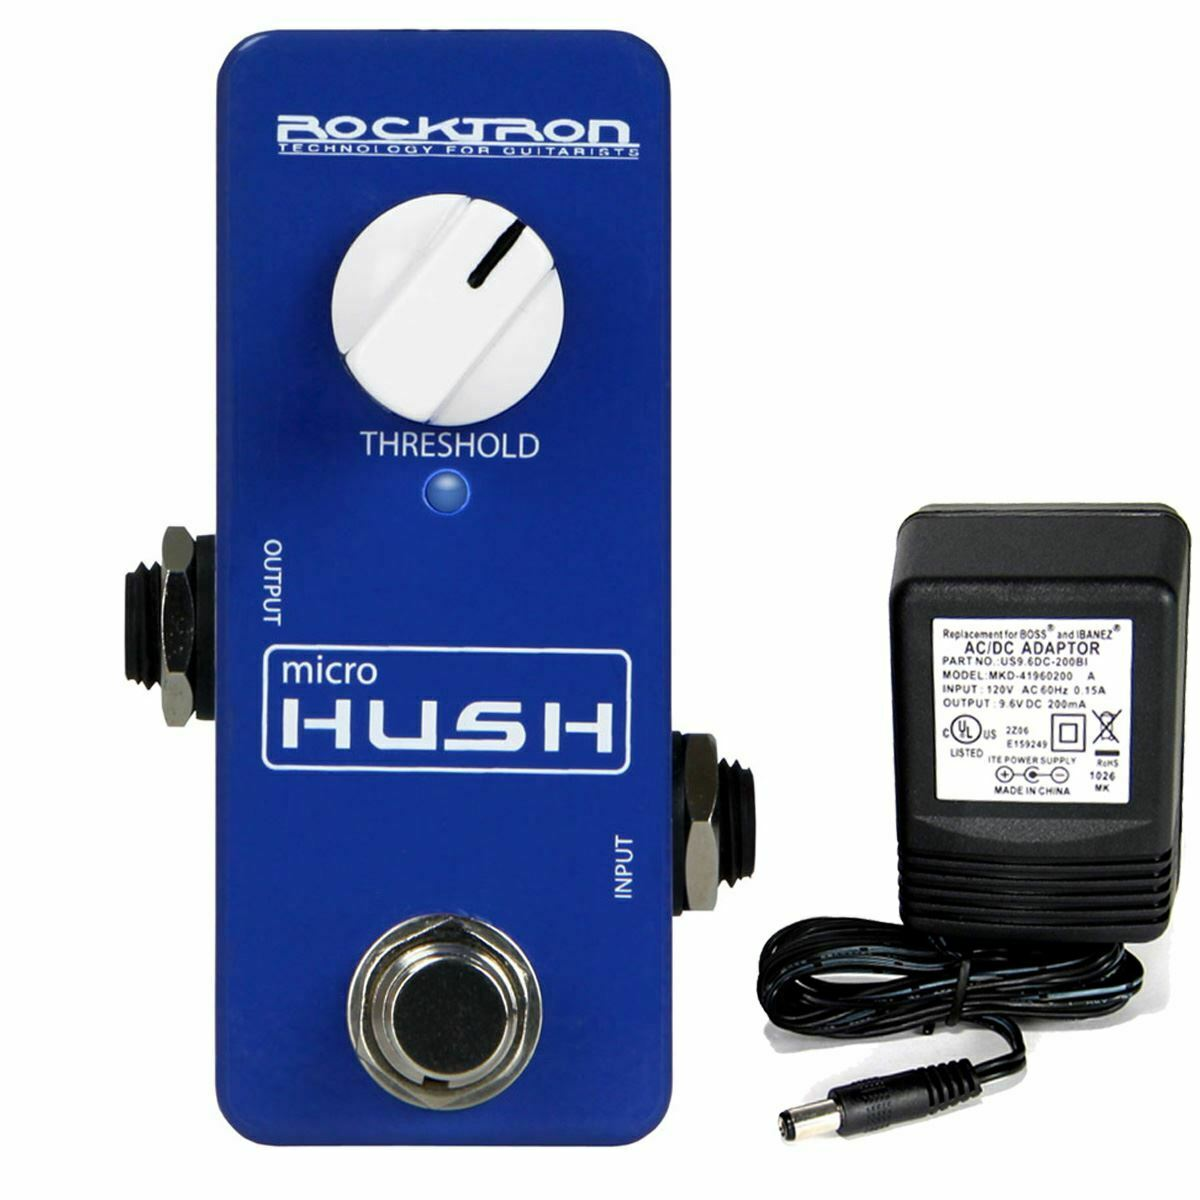 Rocktron MicroHUSH Guitar Noise Reduction pedal w/ 9v power supply